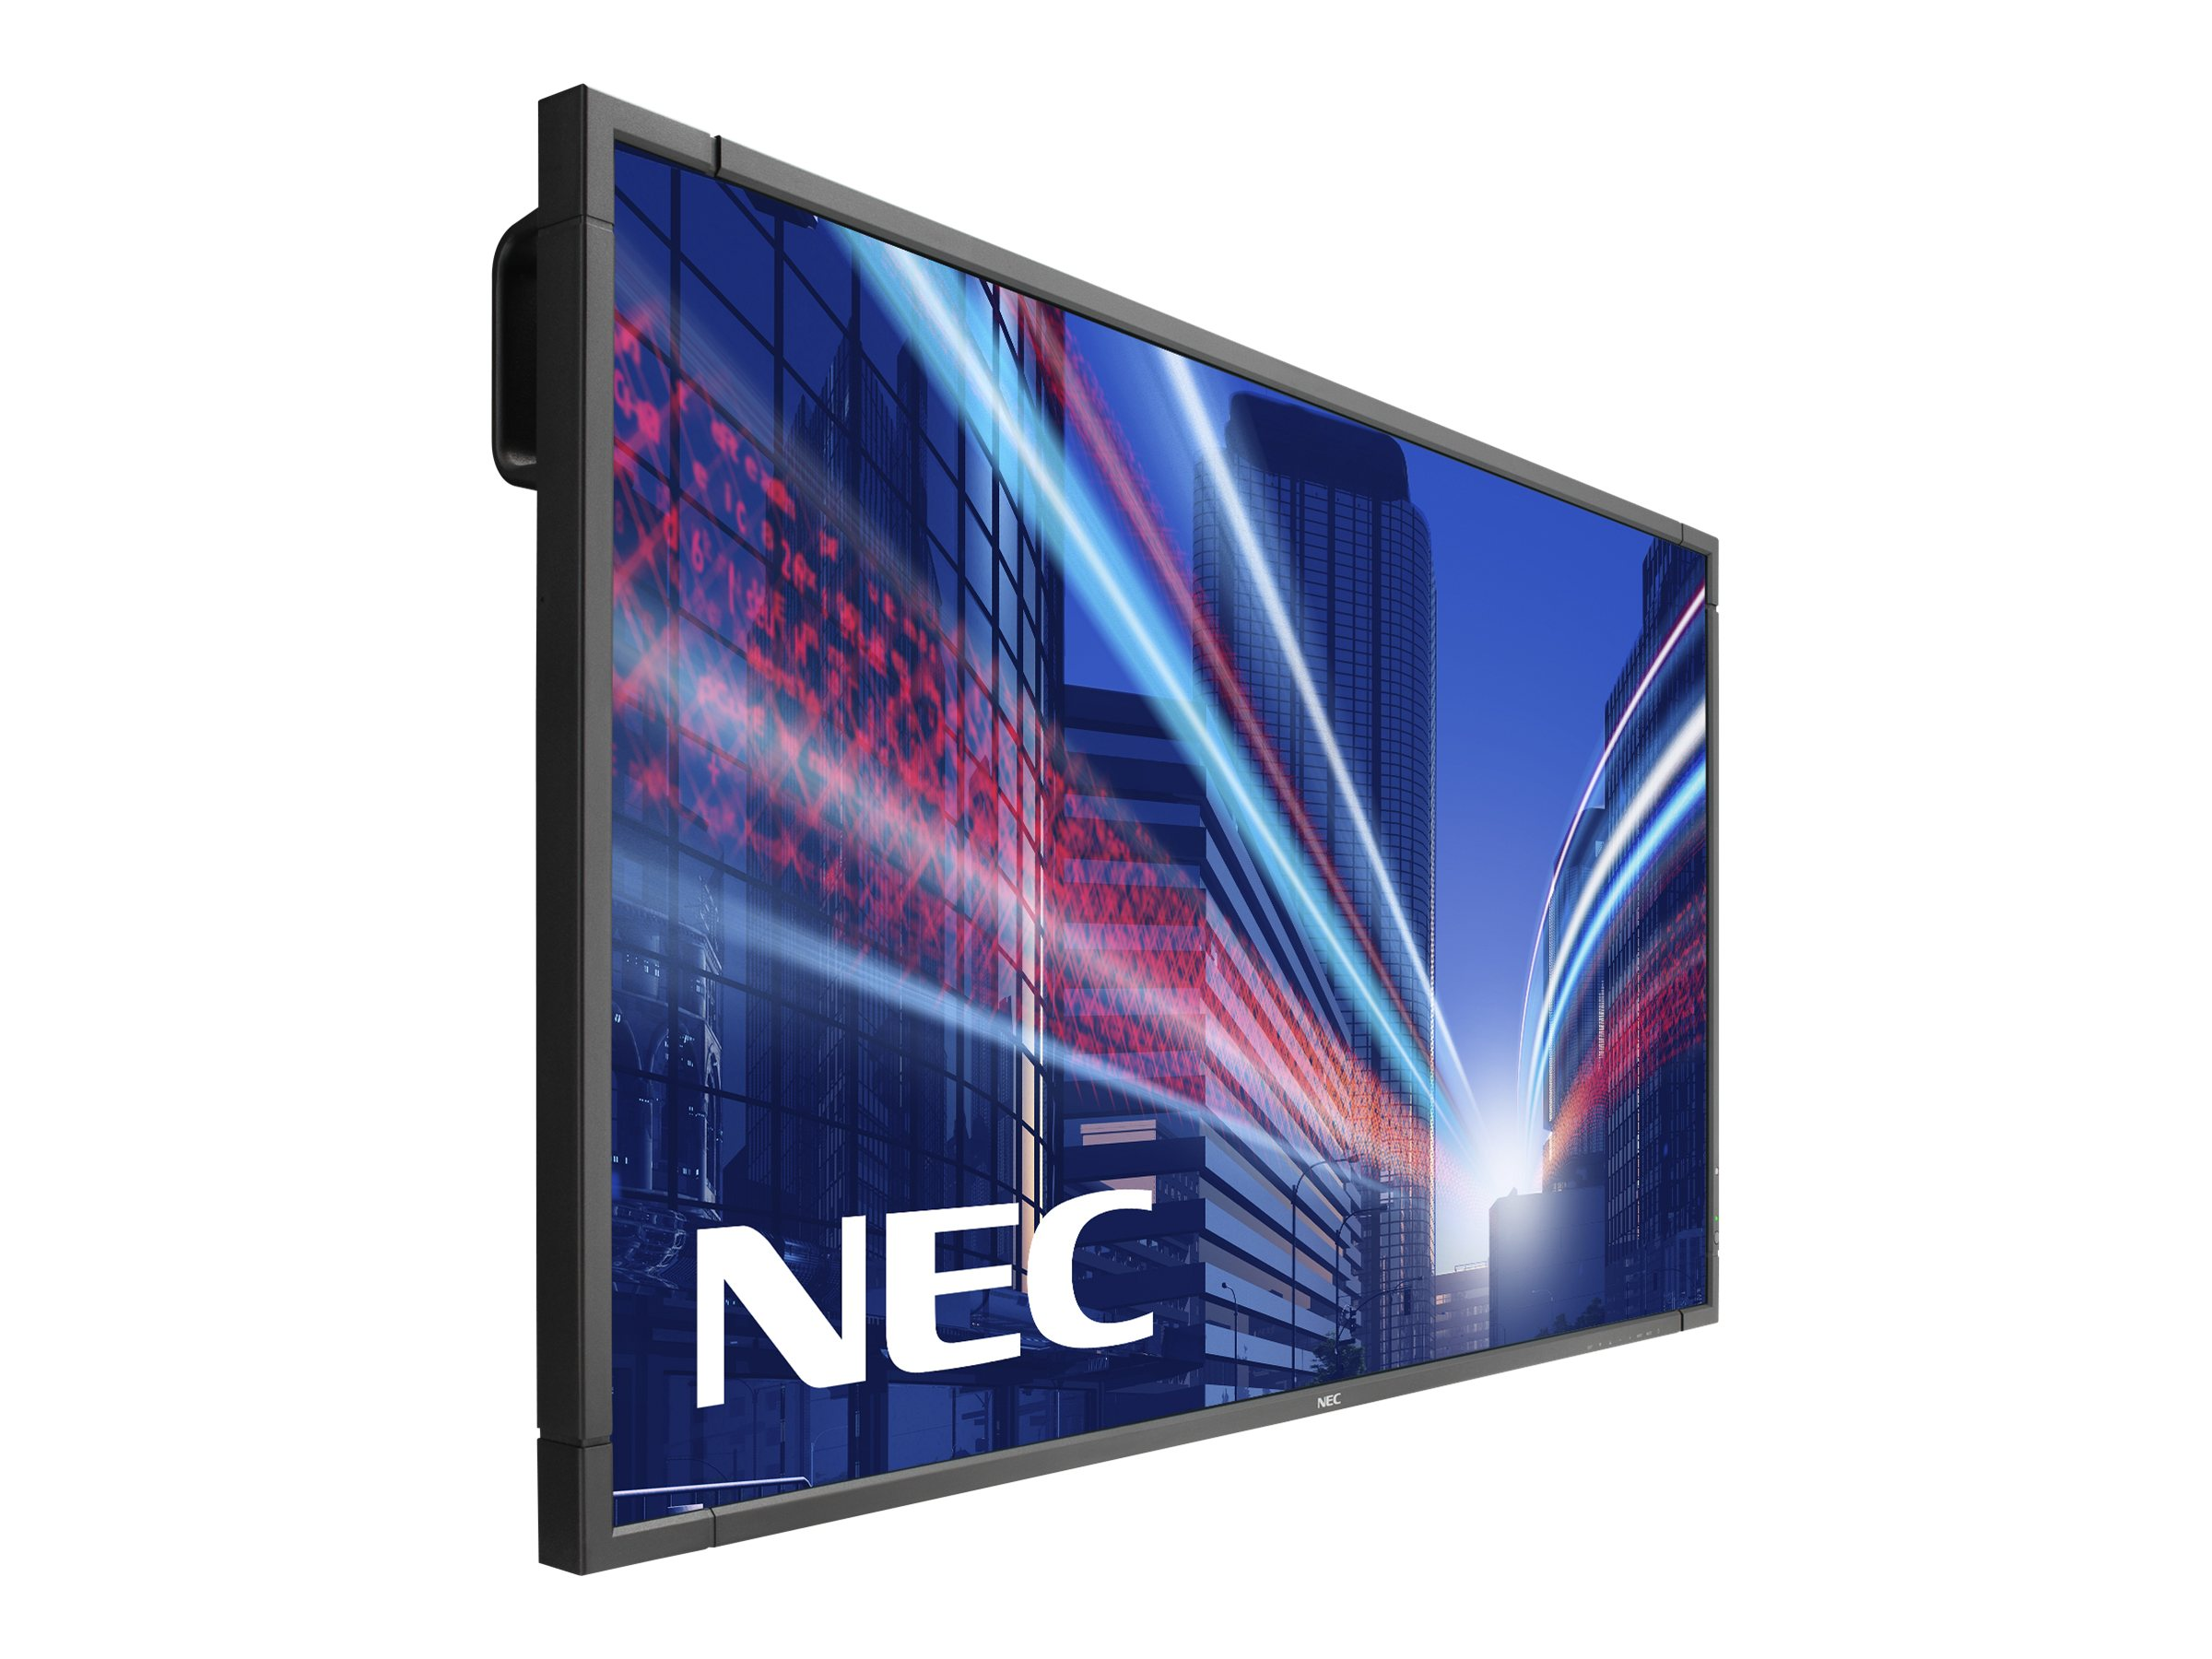 NEC 46 P463 Full HD LED-LCD Monitor, Black, P463, 16477444, Monitors - Large-Format LED-LCD